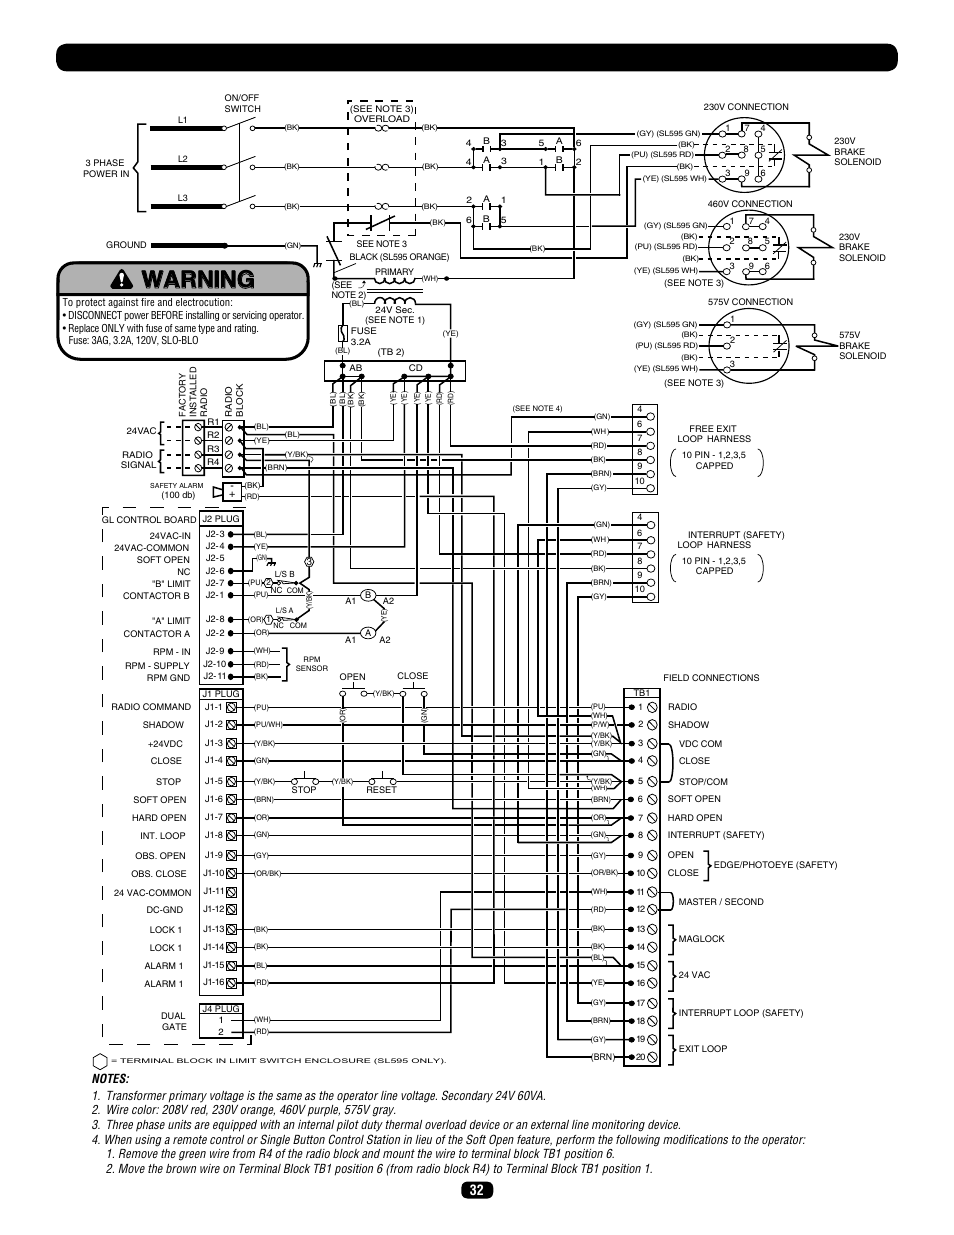 three phase wiring diagram